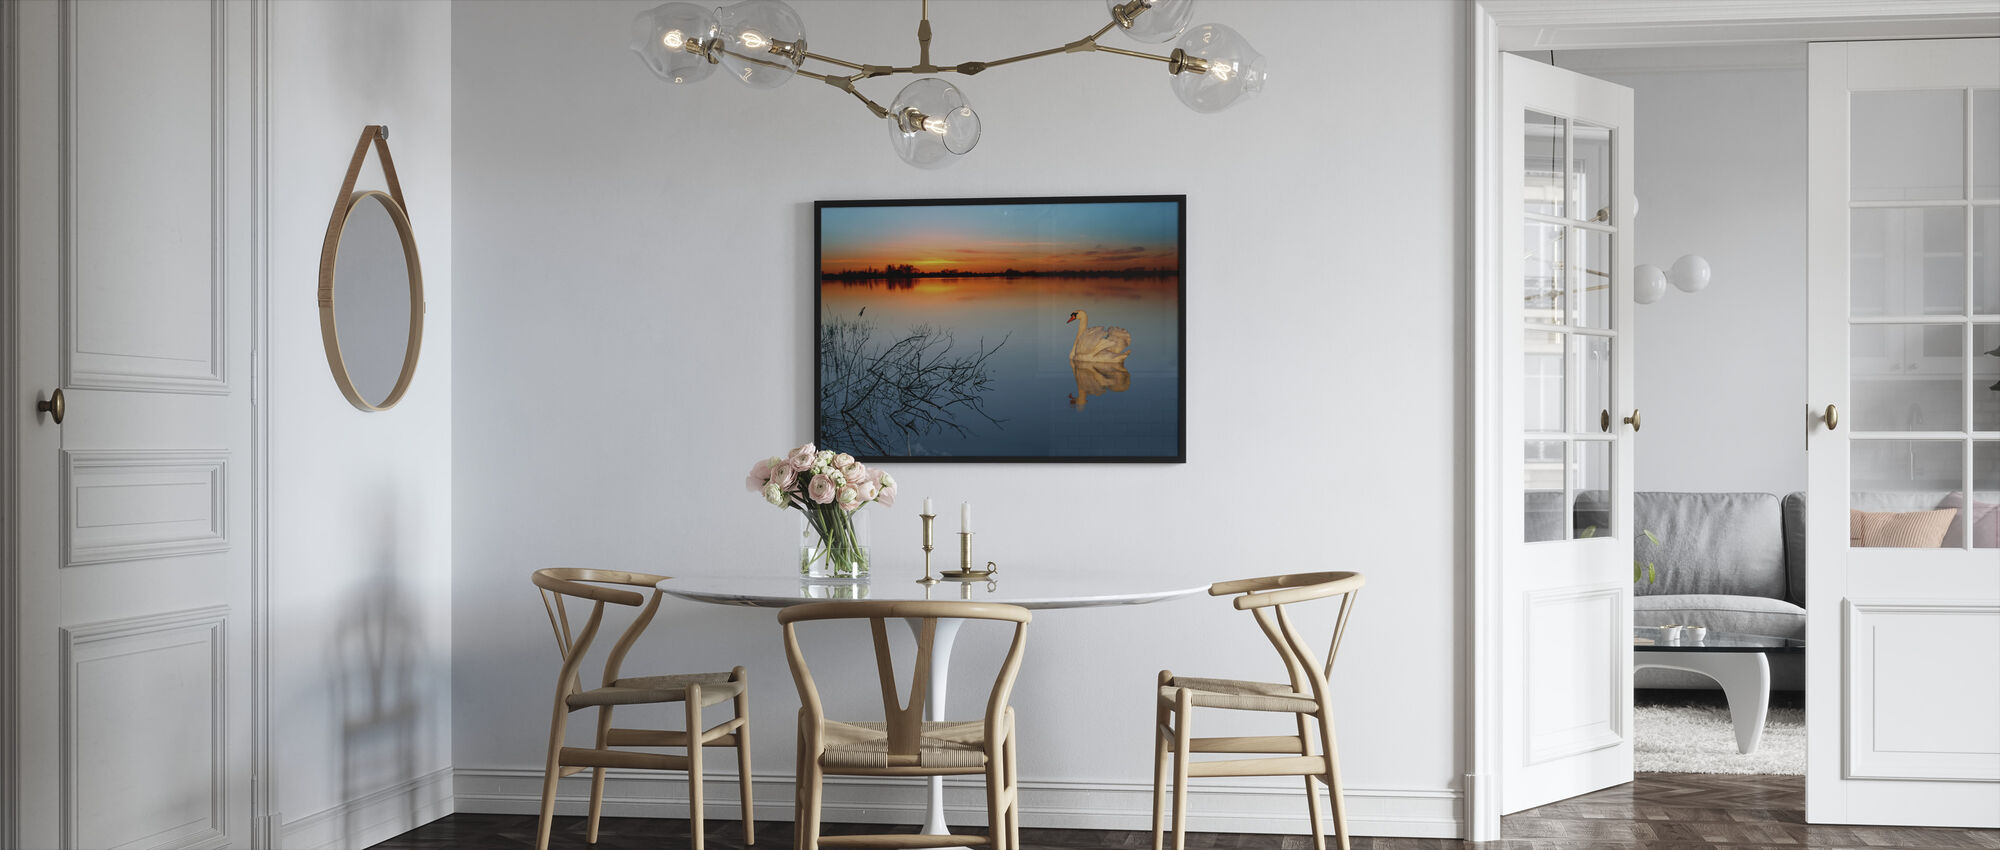 Swan on a lake - Framed print - Kitchen